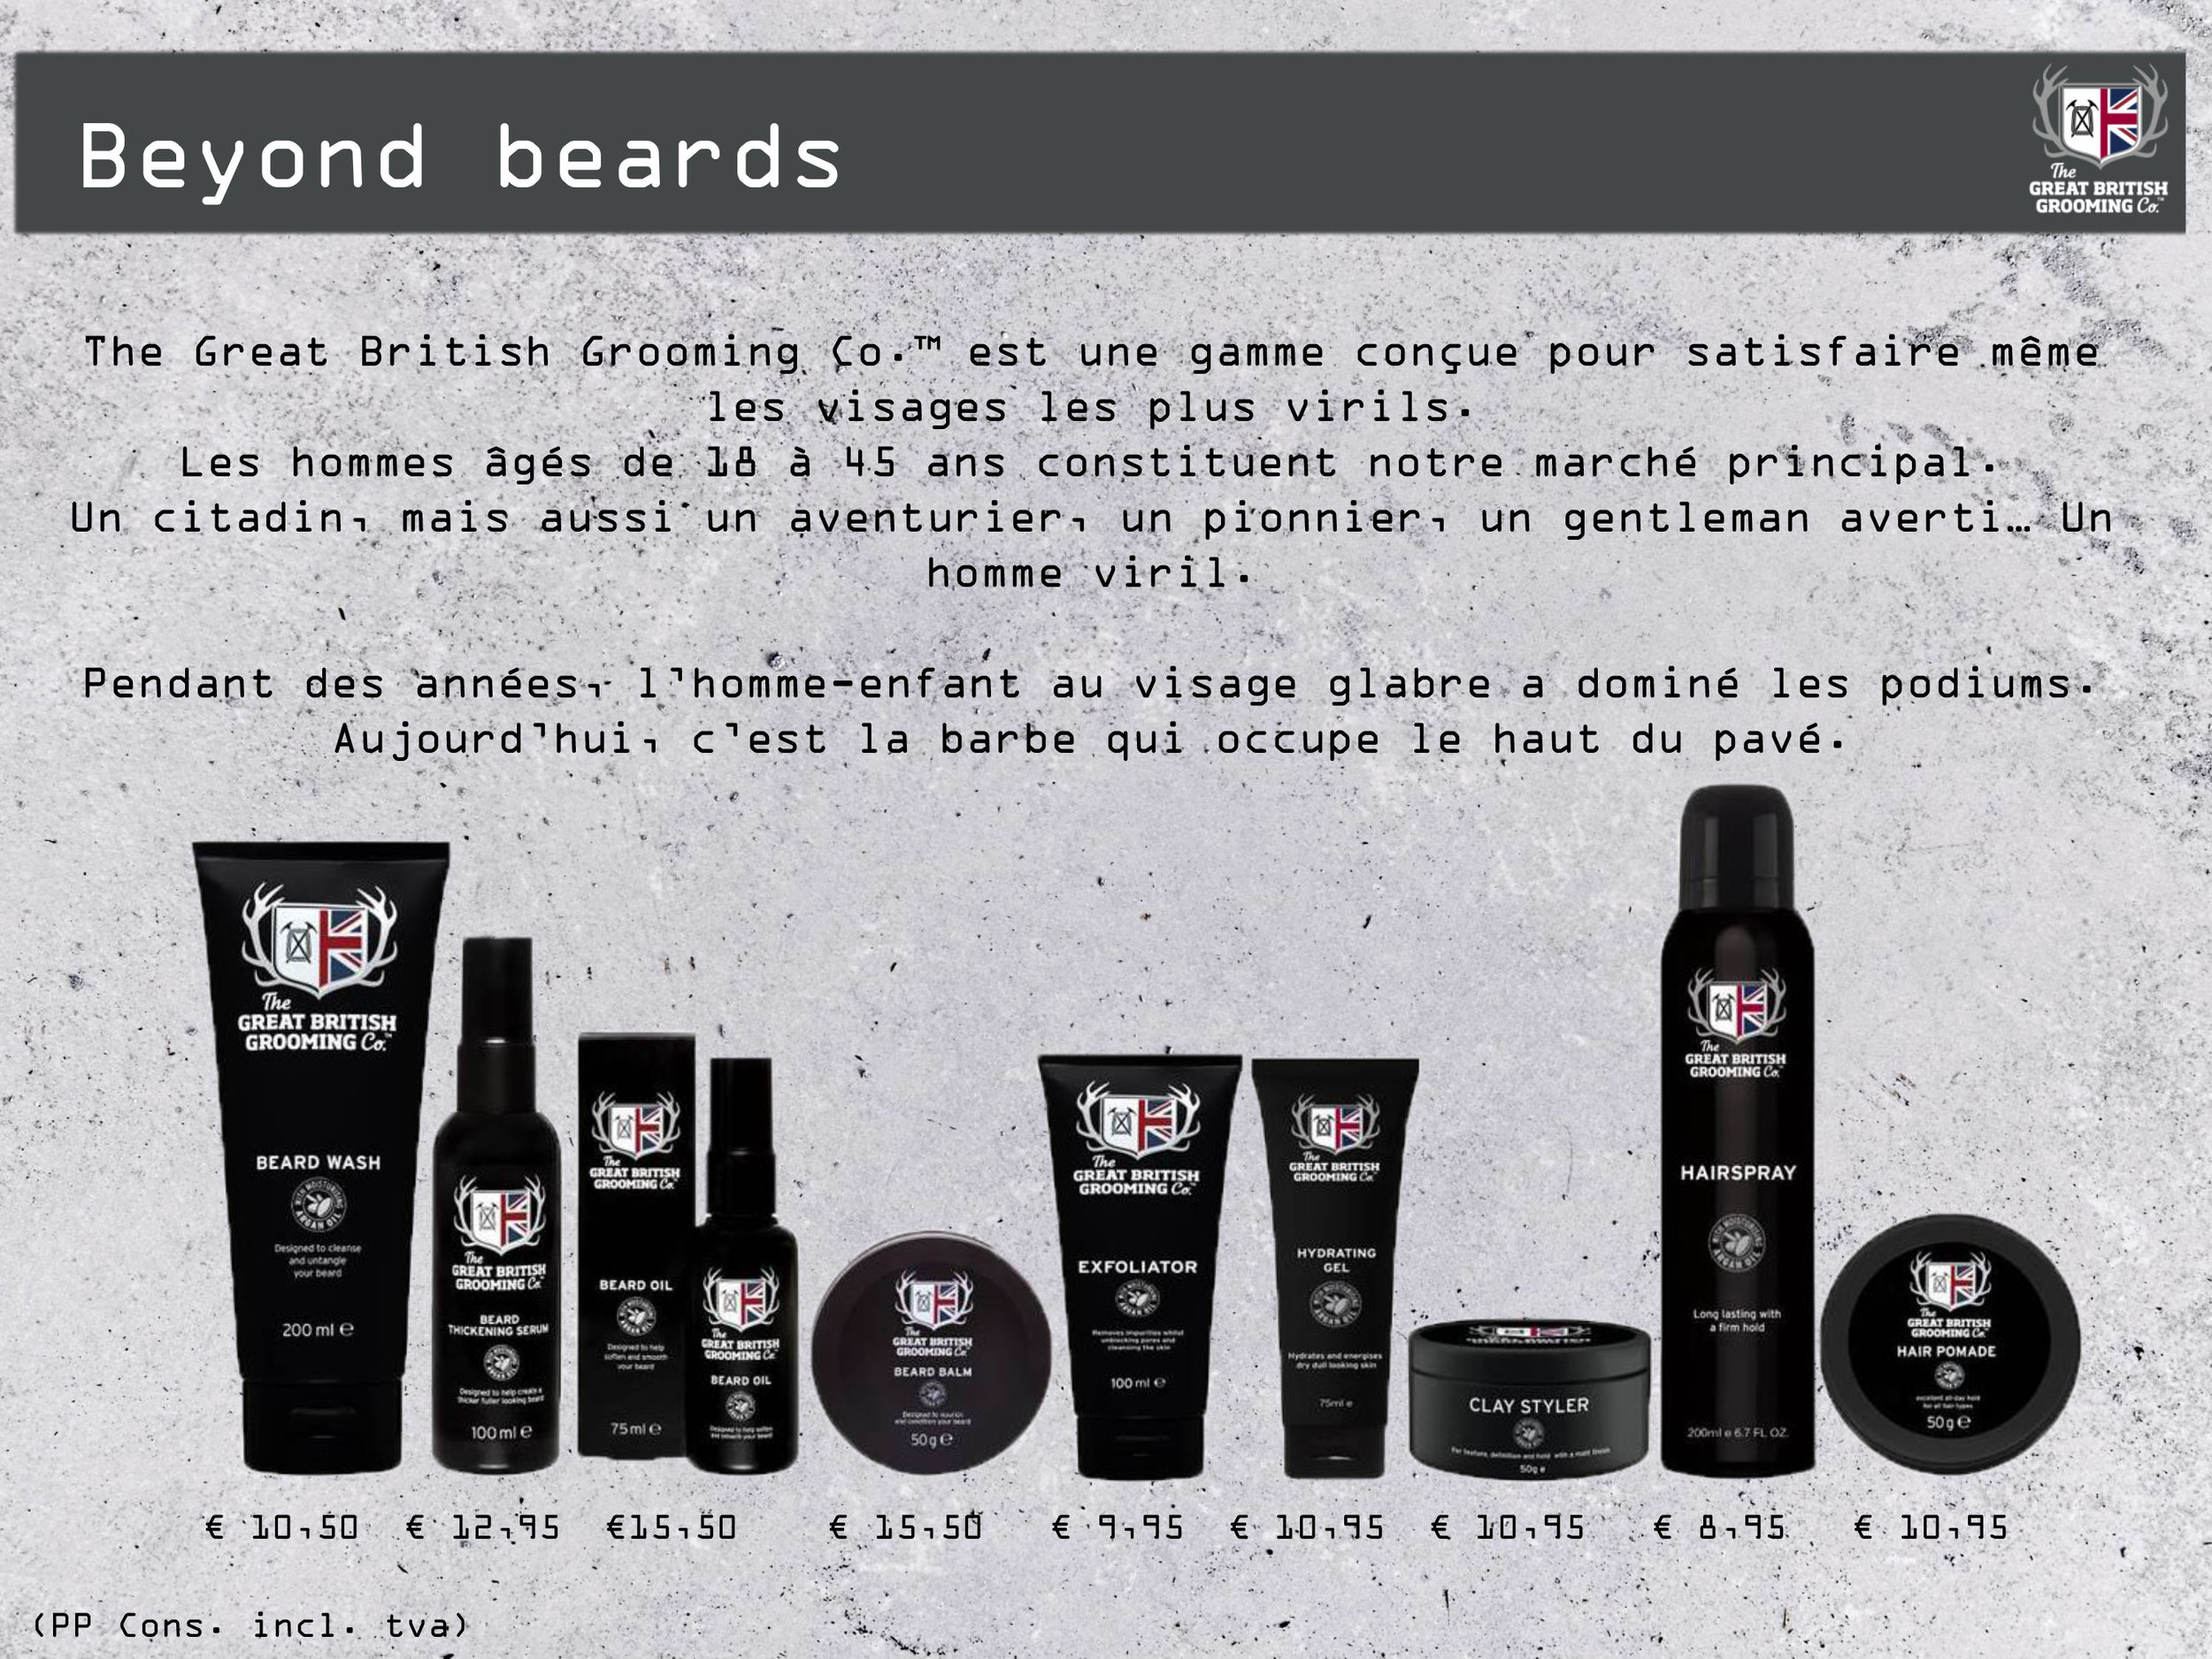 The Great British Grooming Co 3.jpg